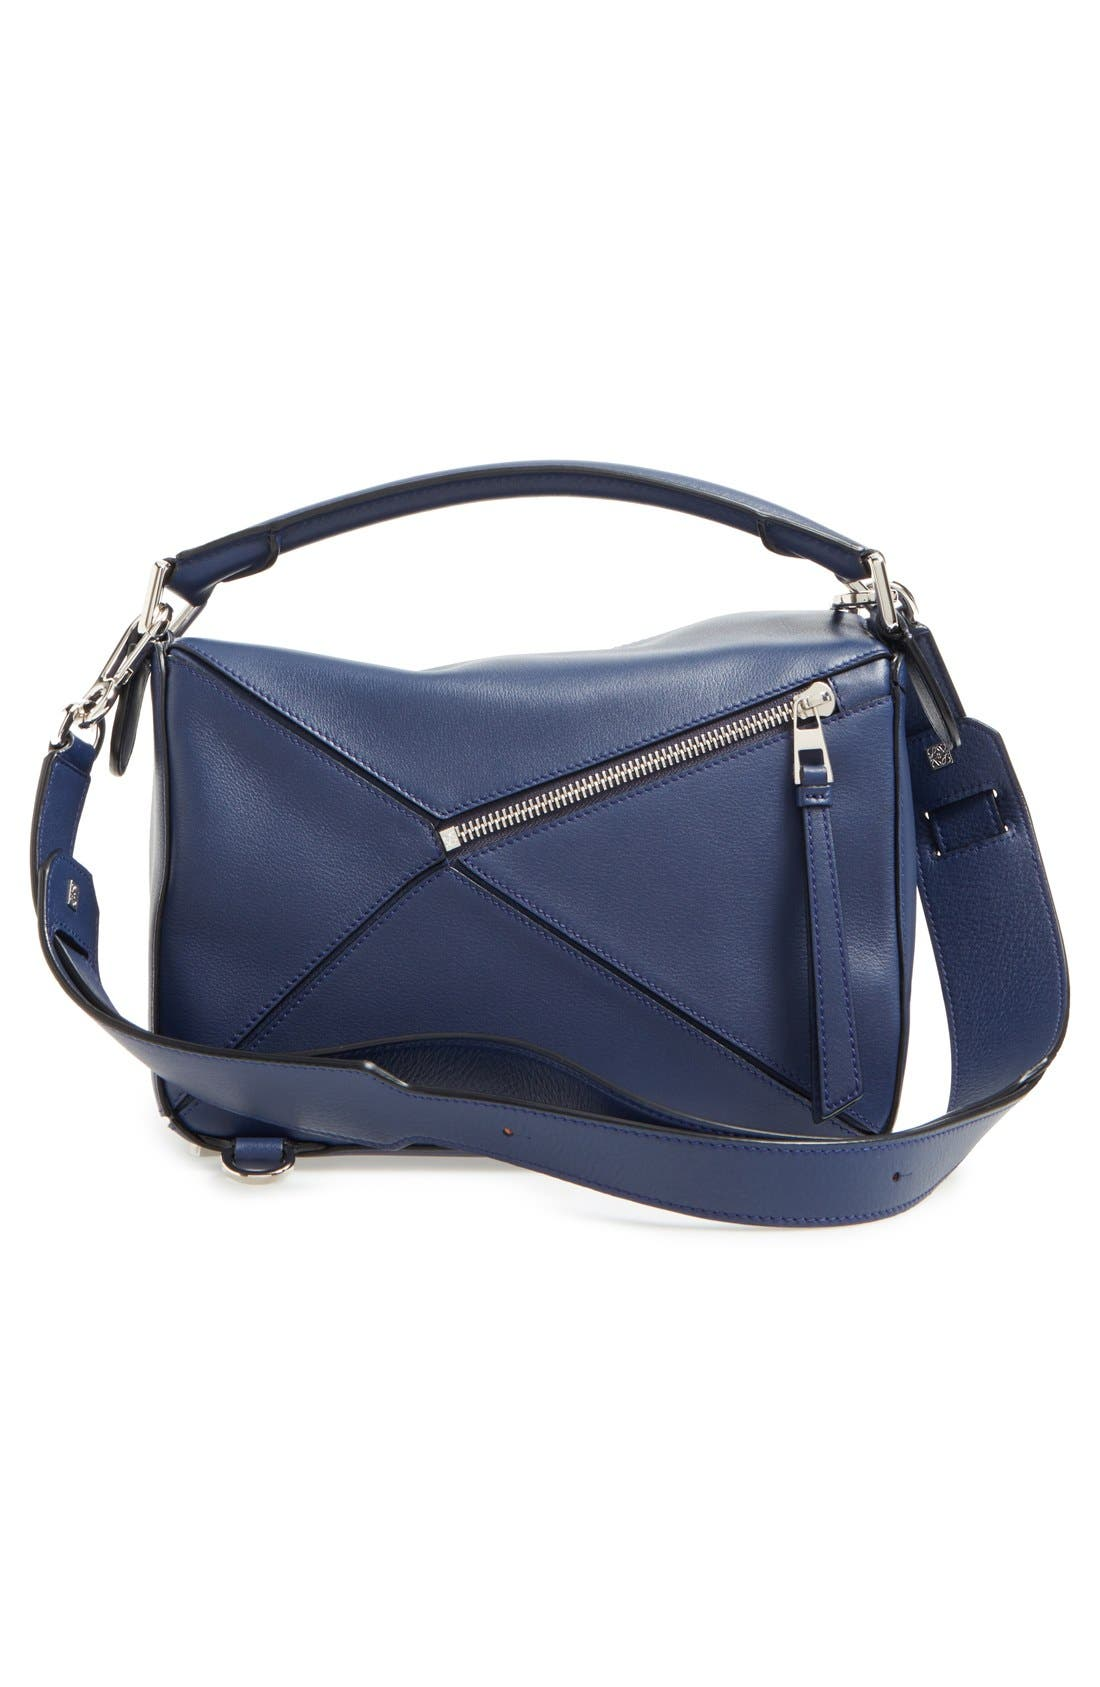 'Small Puzzle' Calfskin Leather Bag,                             Alternate thumbnail 24, color,